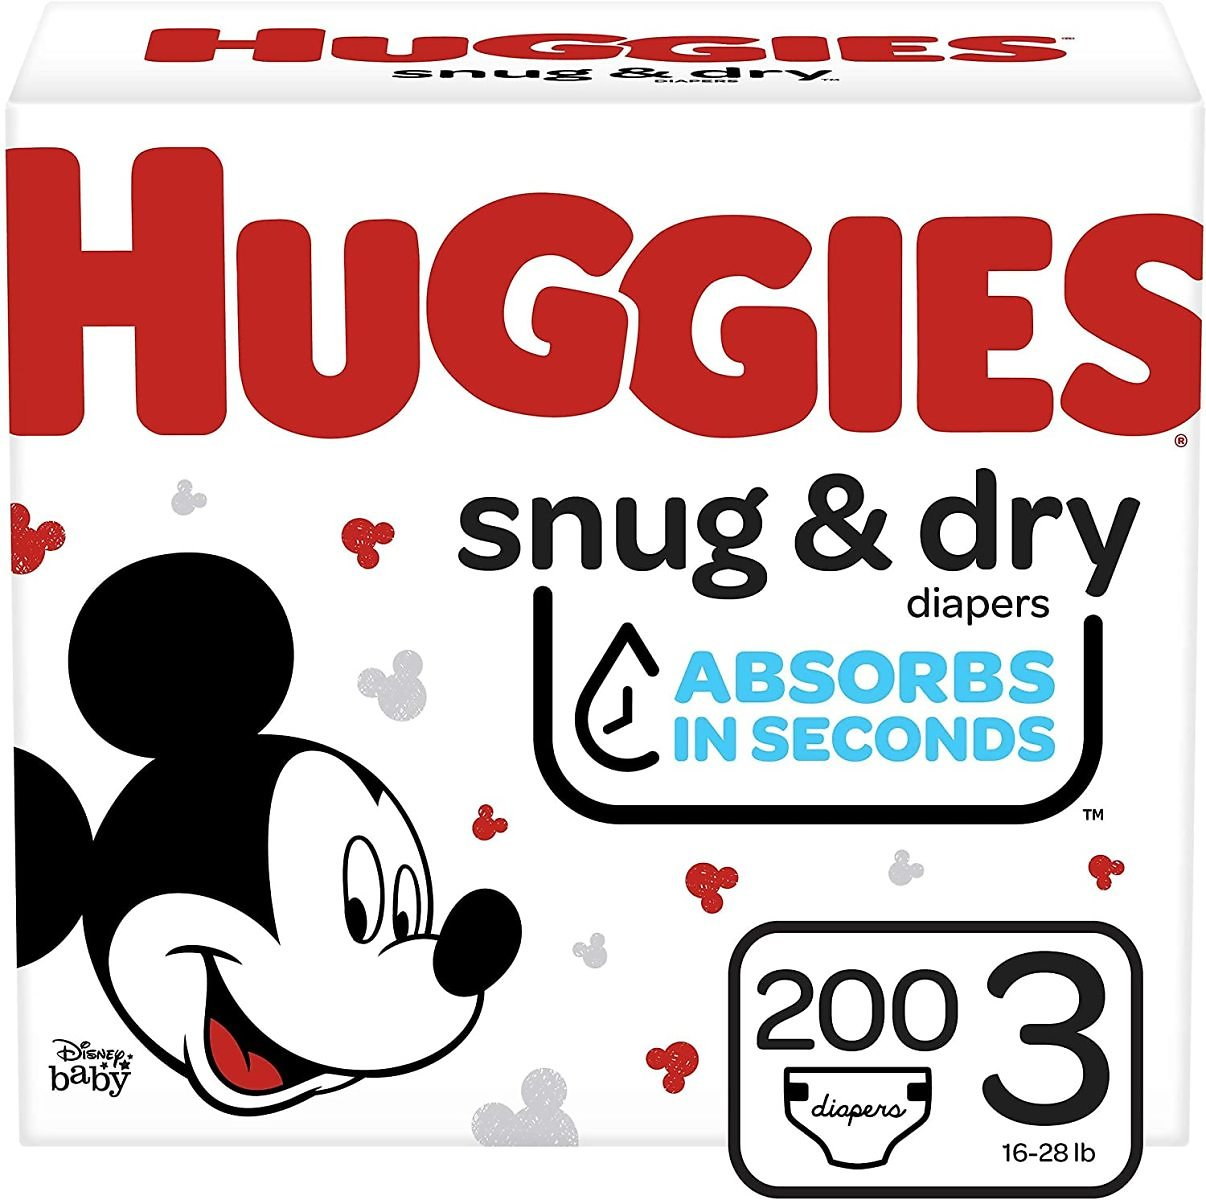 15% Discount - Huggies Snug & Dry Baby Diapers, Size 3, 200 Ct, One Month Supply